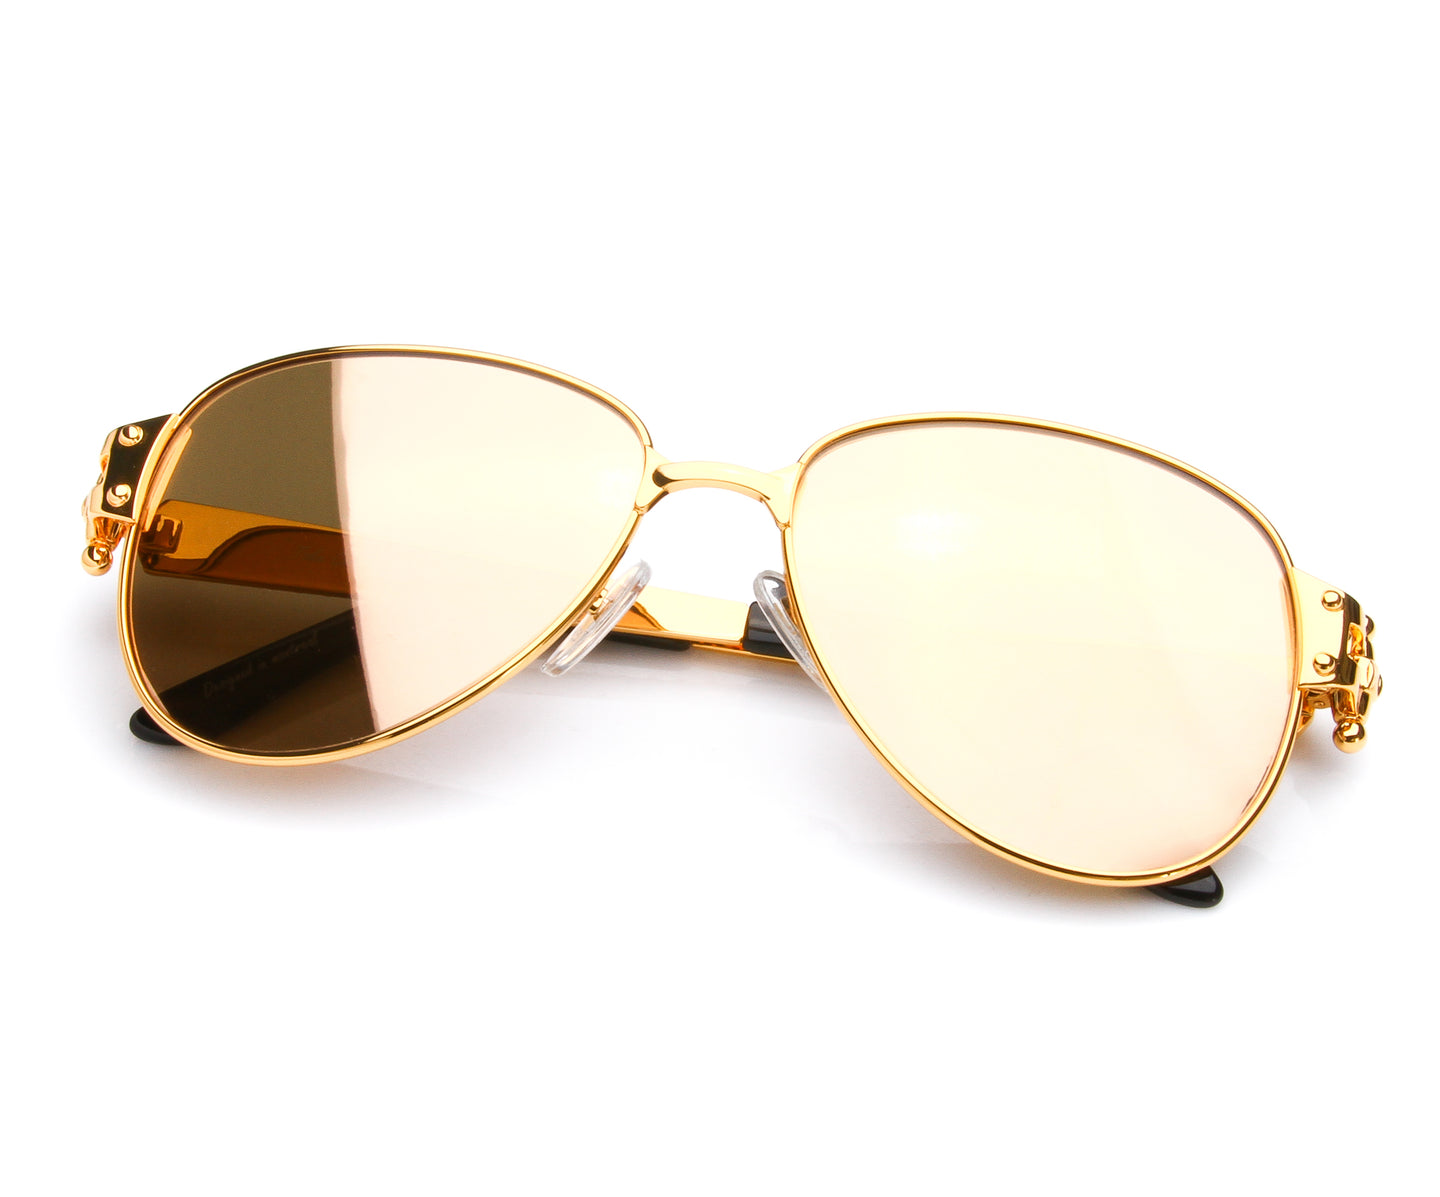 VF 2001 24KT Gold Masterpiece (24KT Gold Lens), VF Masterpiece , glasses frames, eyeglasses online, eyeglass frames, mens glasses, womens glasses, buy glasses online, designer eyeglasses, vintage sunglasses, retro sunglasses, vintage glasses, sunglass, eyeglass, glasses, lens, vintage frames company, vf